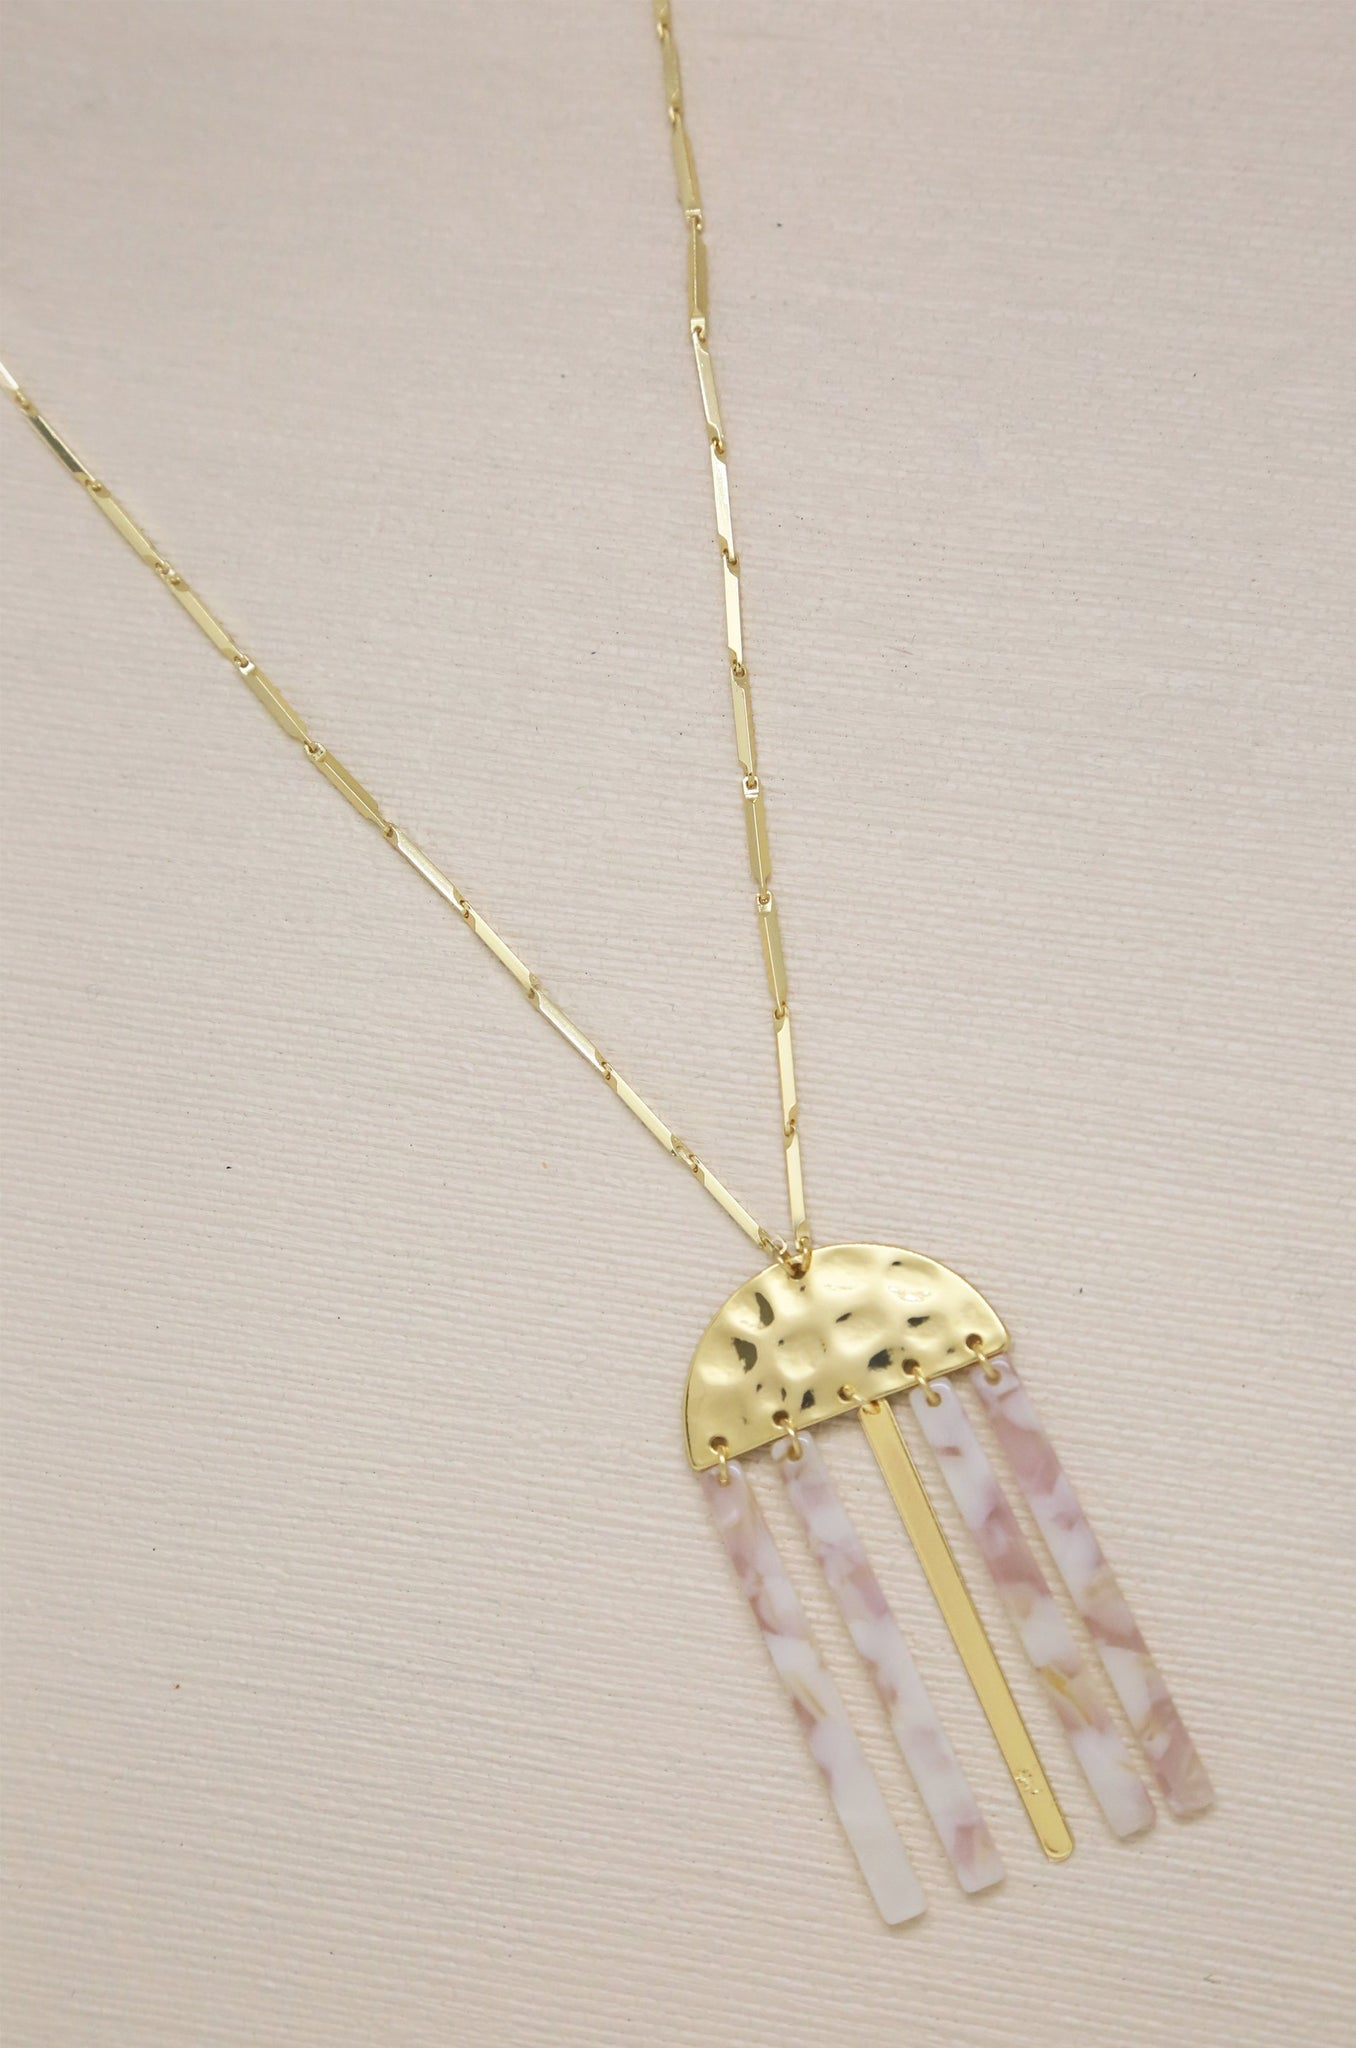 Golden Goddess Geometric Pendant Necklace with